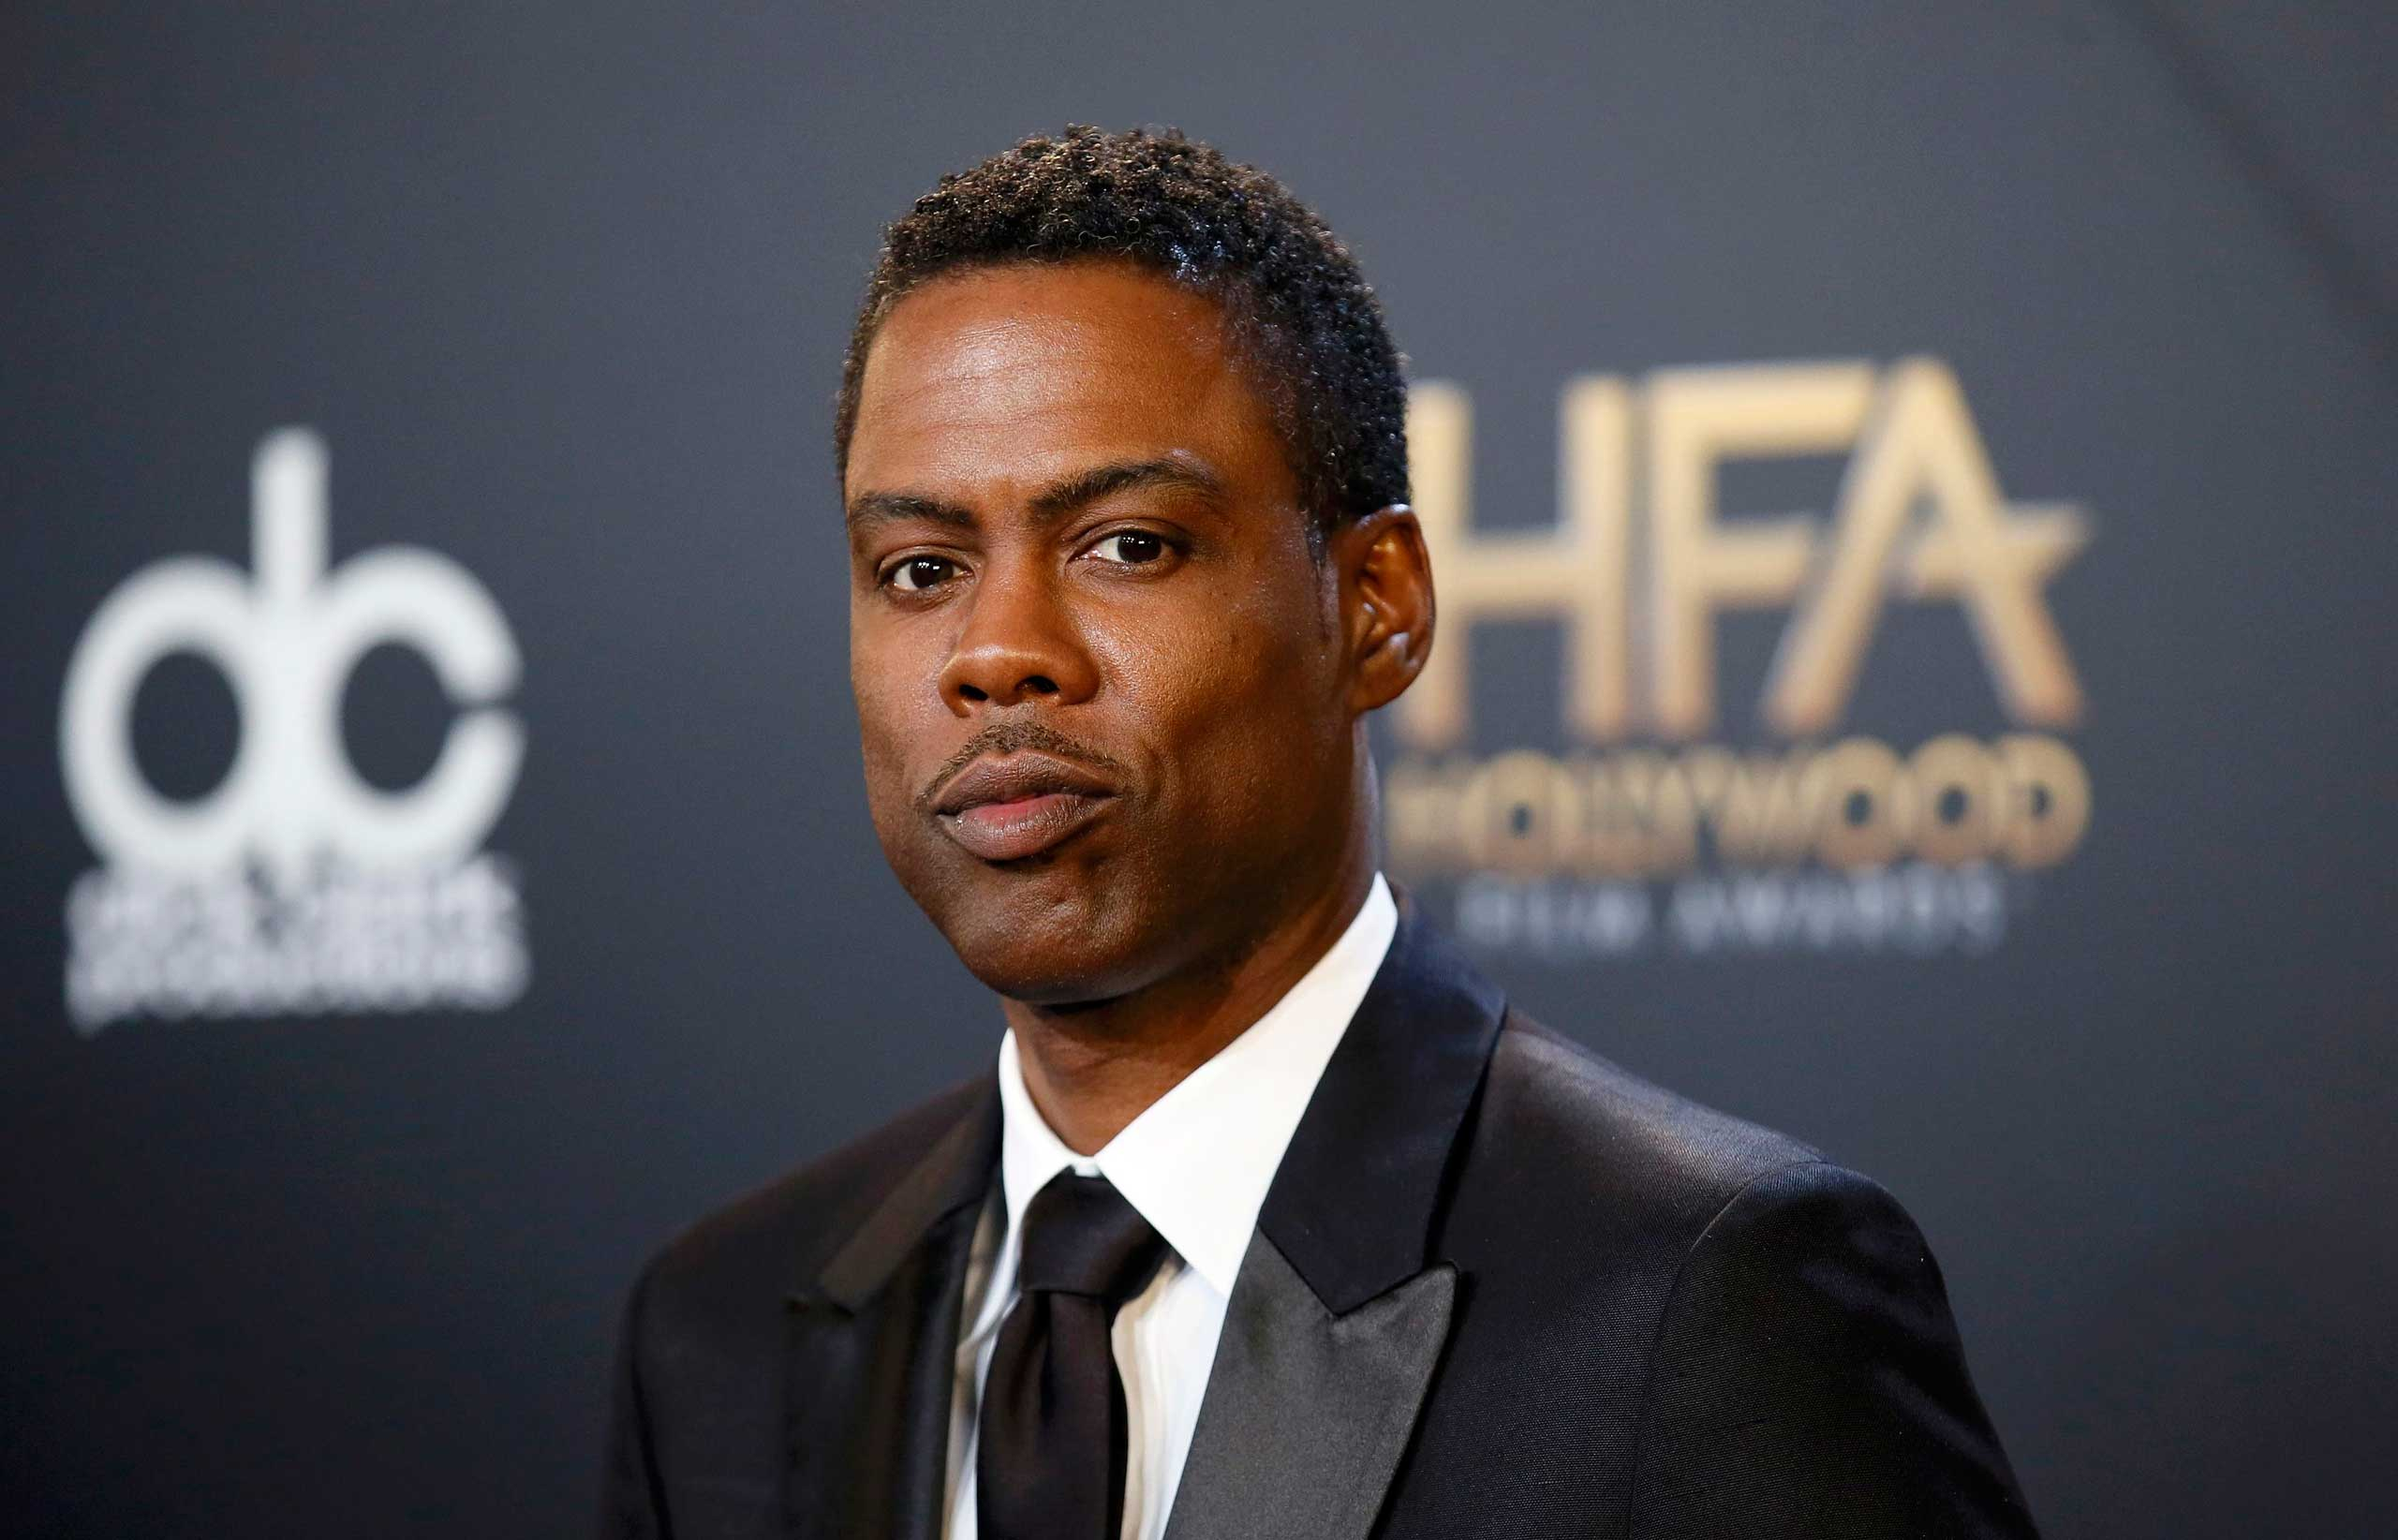 Actor Chris Rock poses backstage during the Hollywood Film Awards in Hollywood, Calif. on  Nov. 14, 2014.